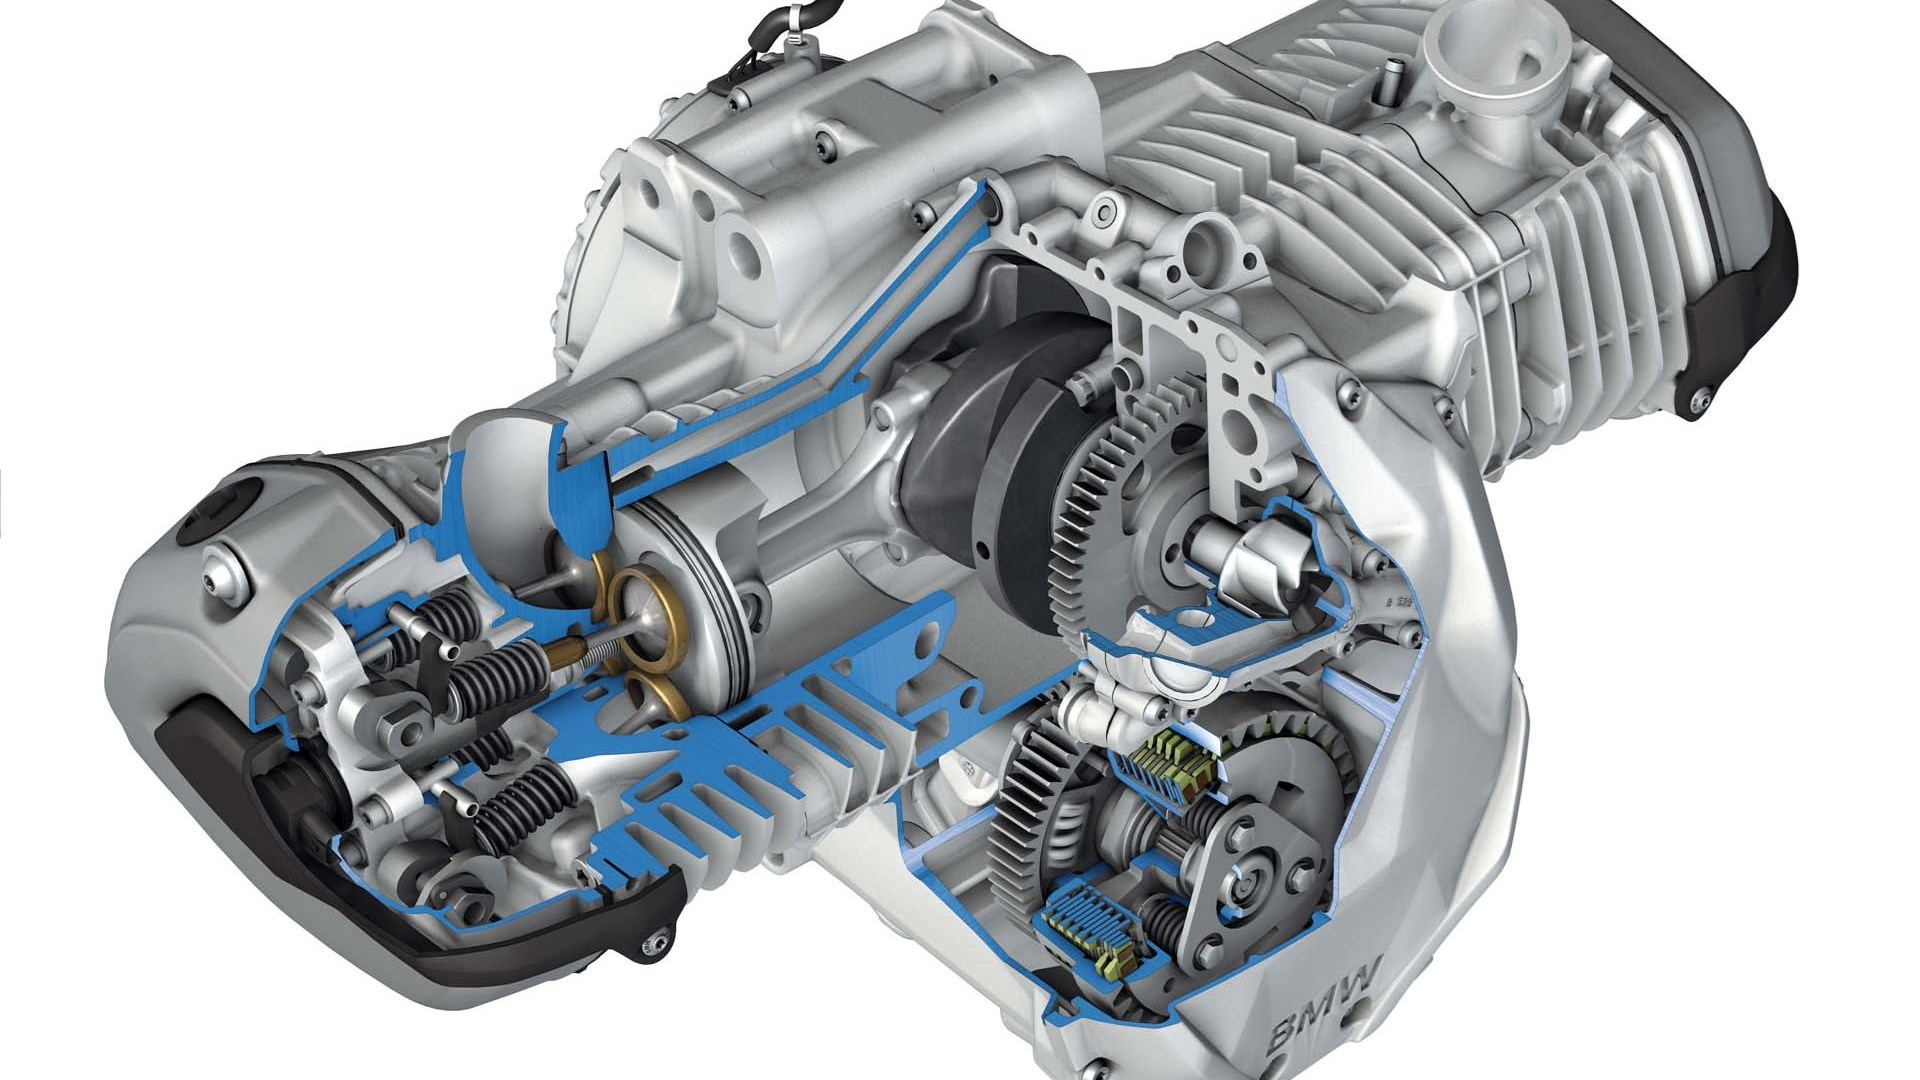 Motorcycle Engine- How does a Motorcycle Engine Work?